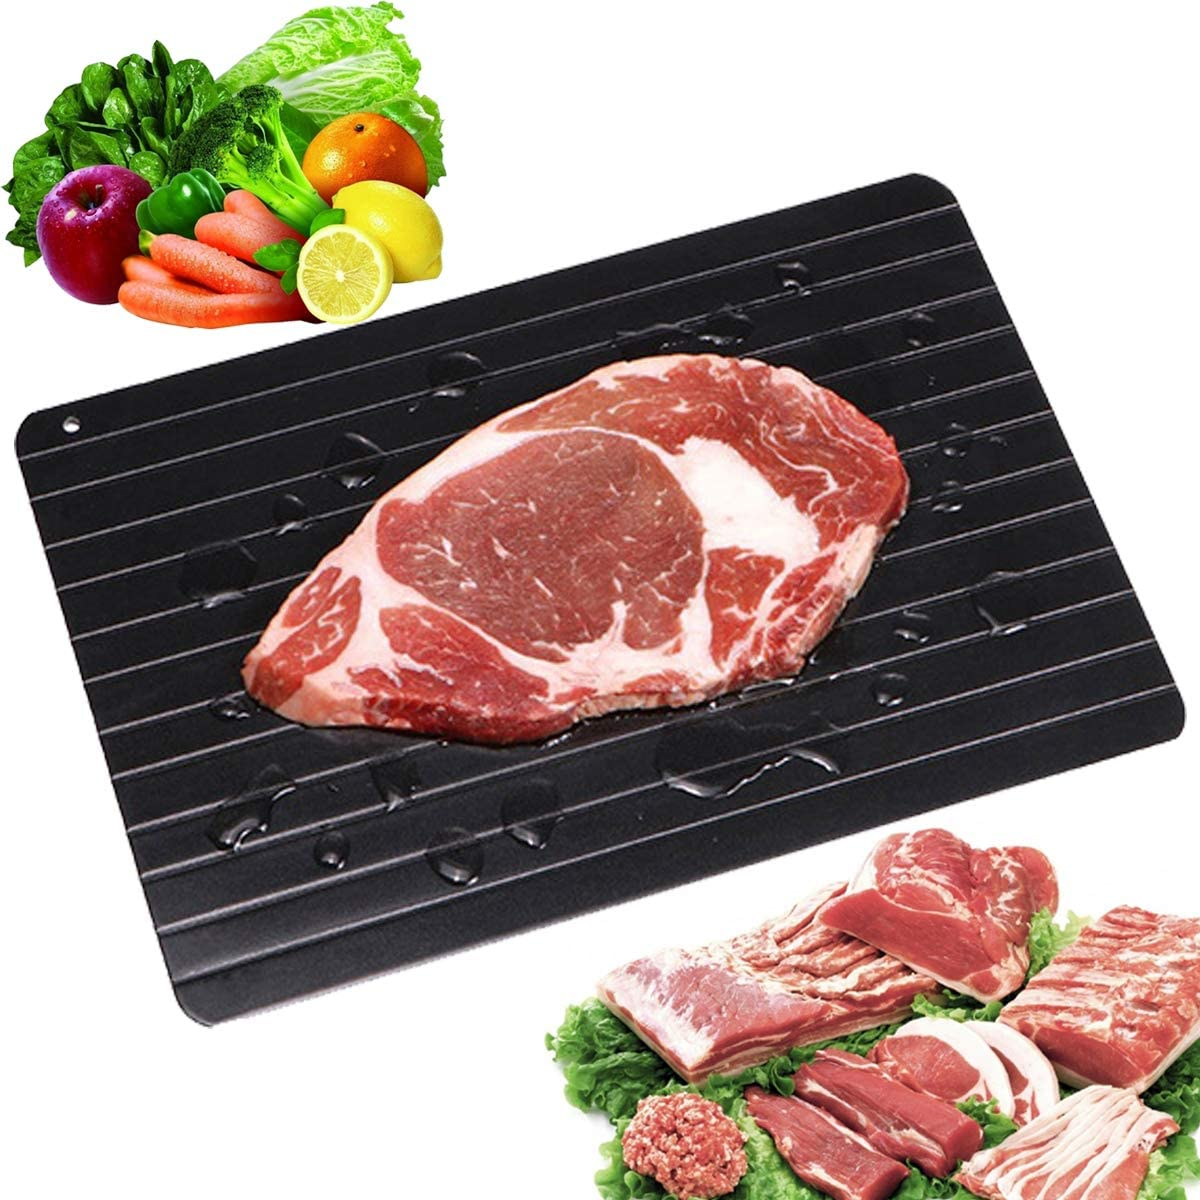 Haploon Fast Defrosting Tray, High Density Aluminum Thawing Tray for Defrosting Frozen Food,Rapid Thawing Plate for Defrost Meat Pork Beef Fish frozen foods without a Microwave or Hot Water(Black)